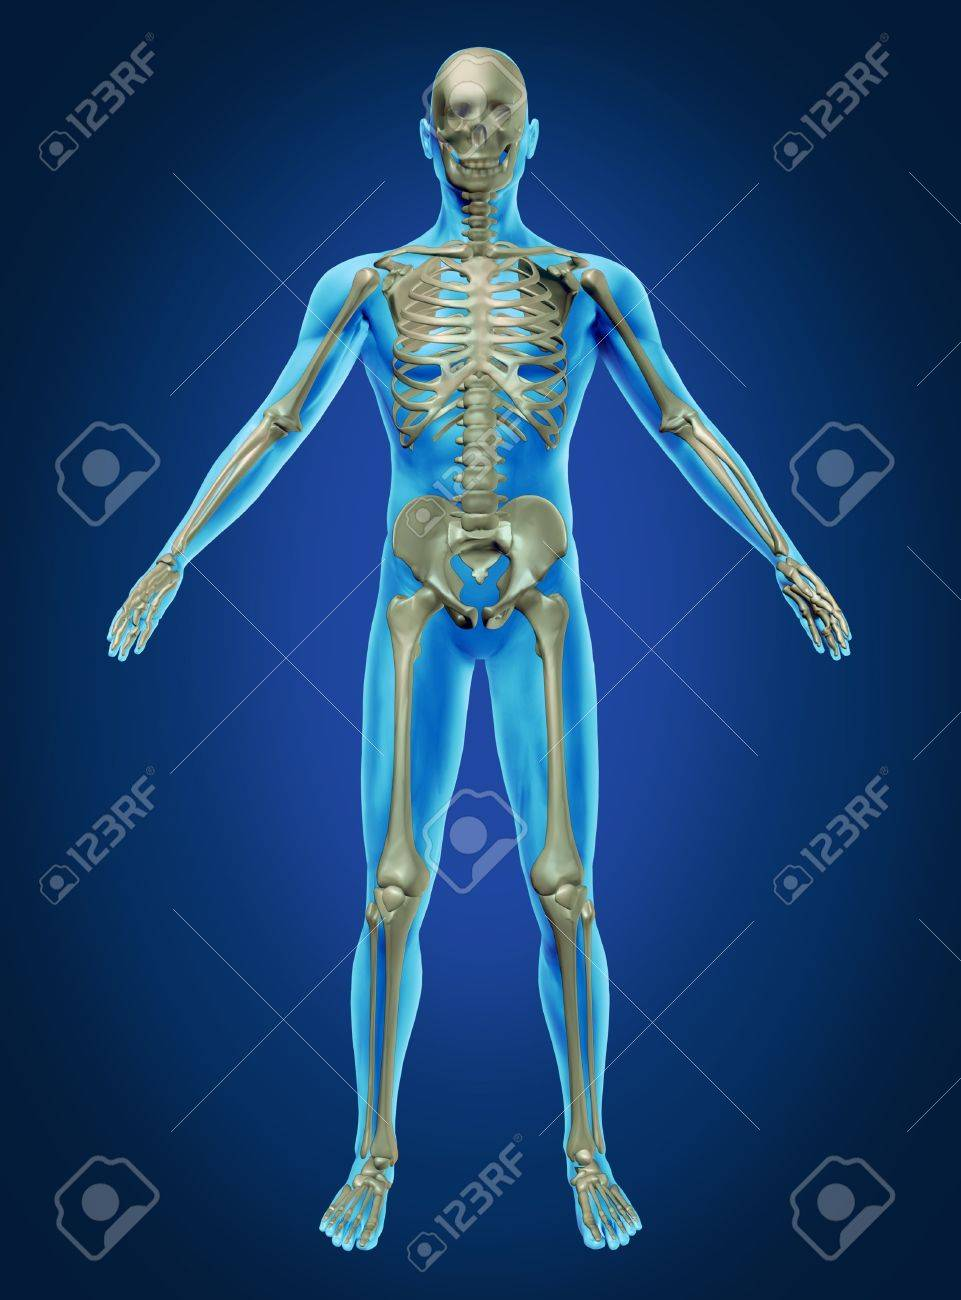 Human Body And Skeleton With The Skeletal Anatomy In A Rested